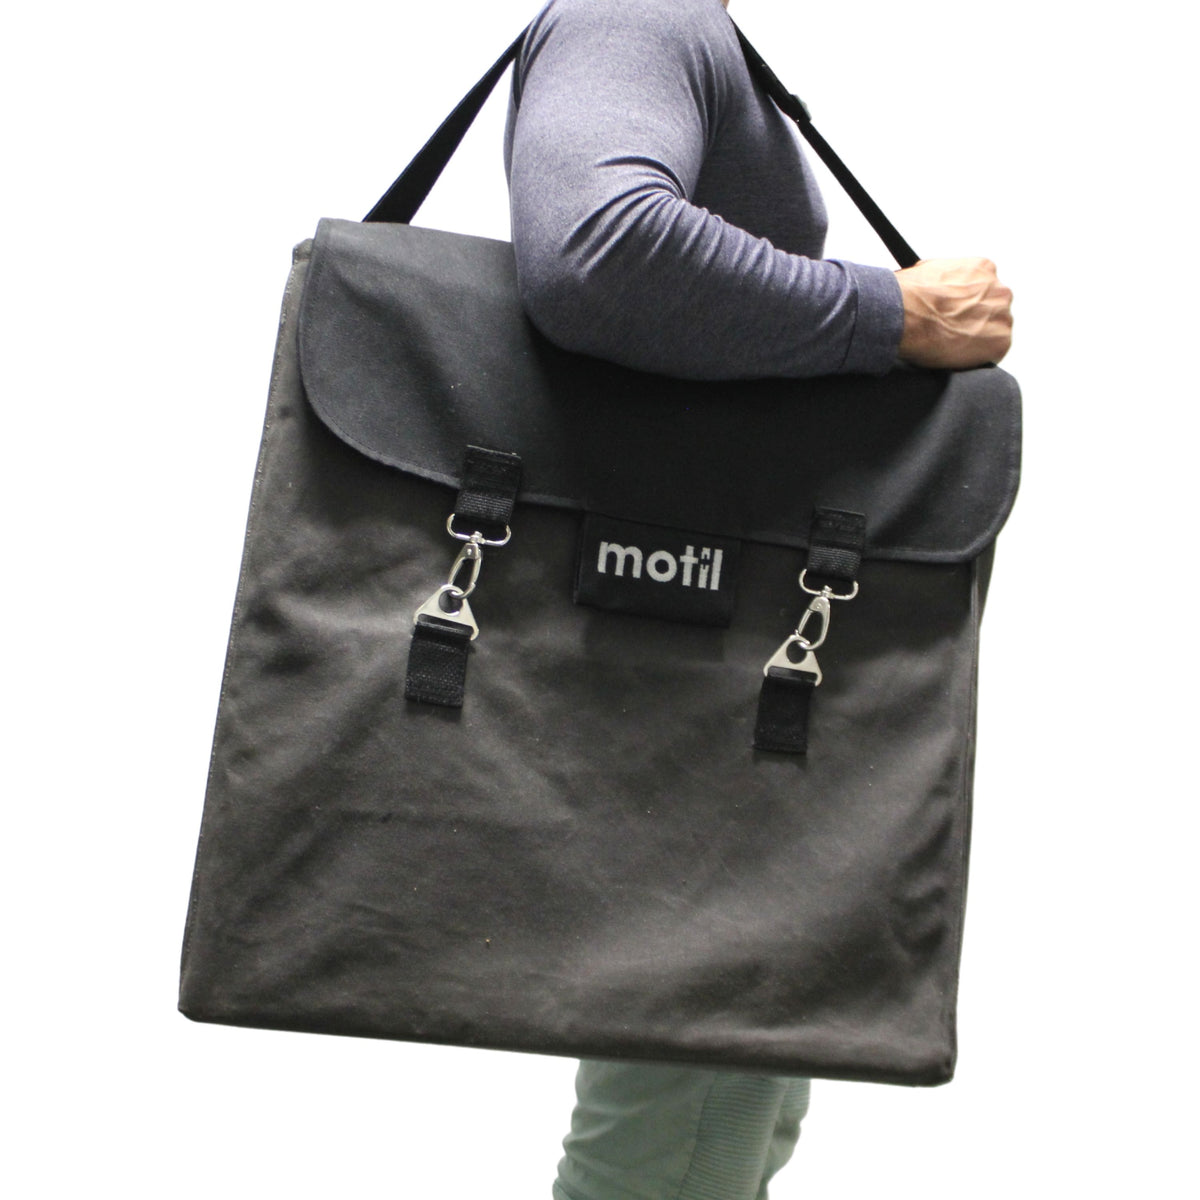 Motil: Temporary Privacy System